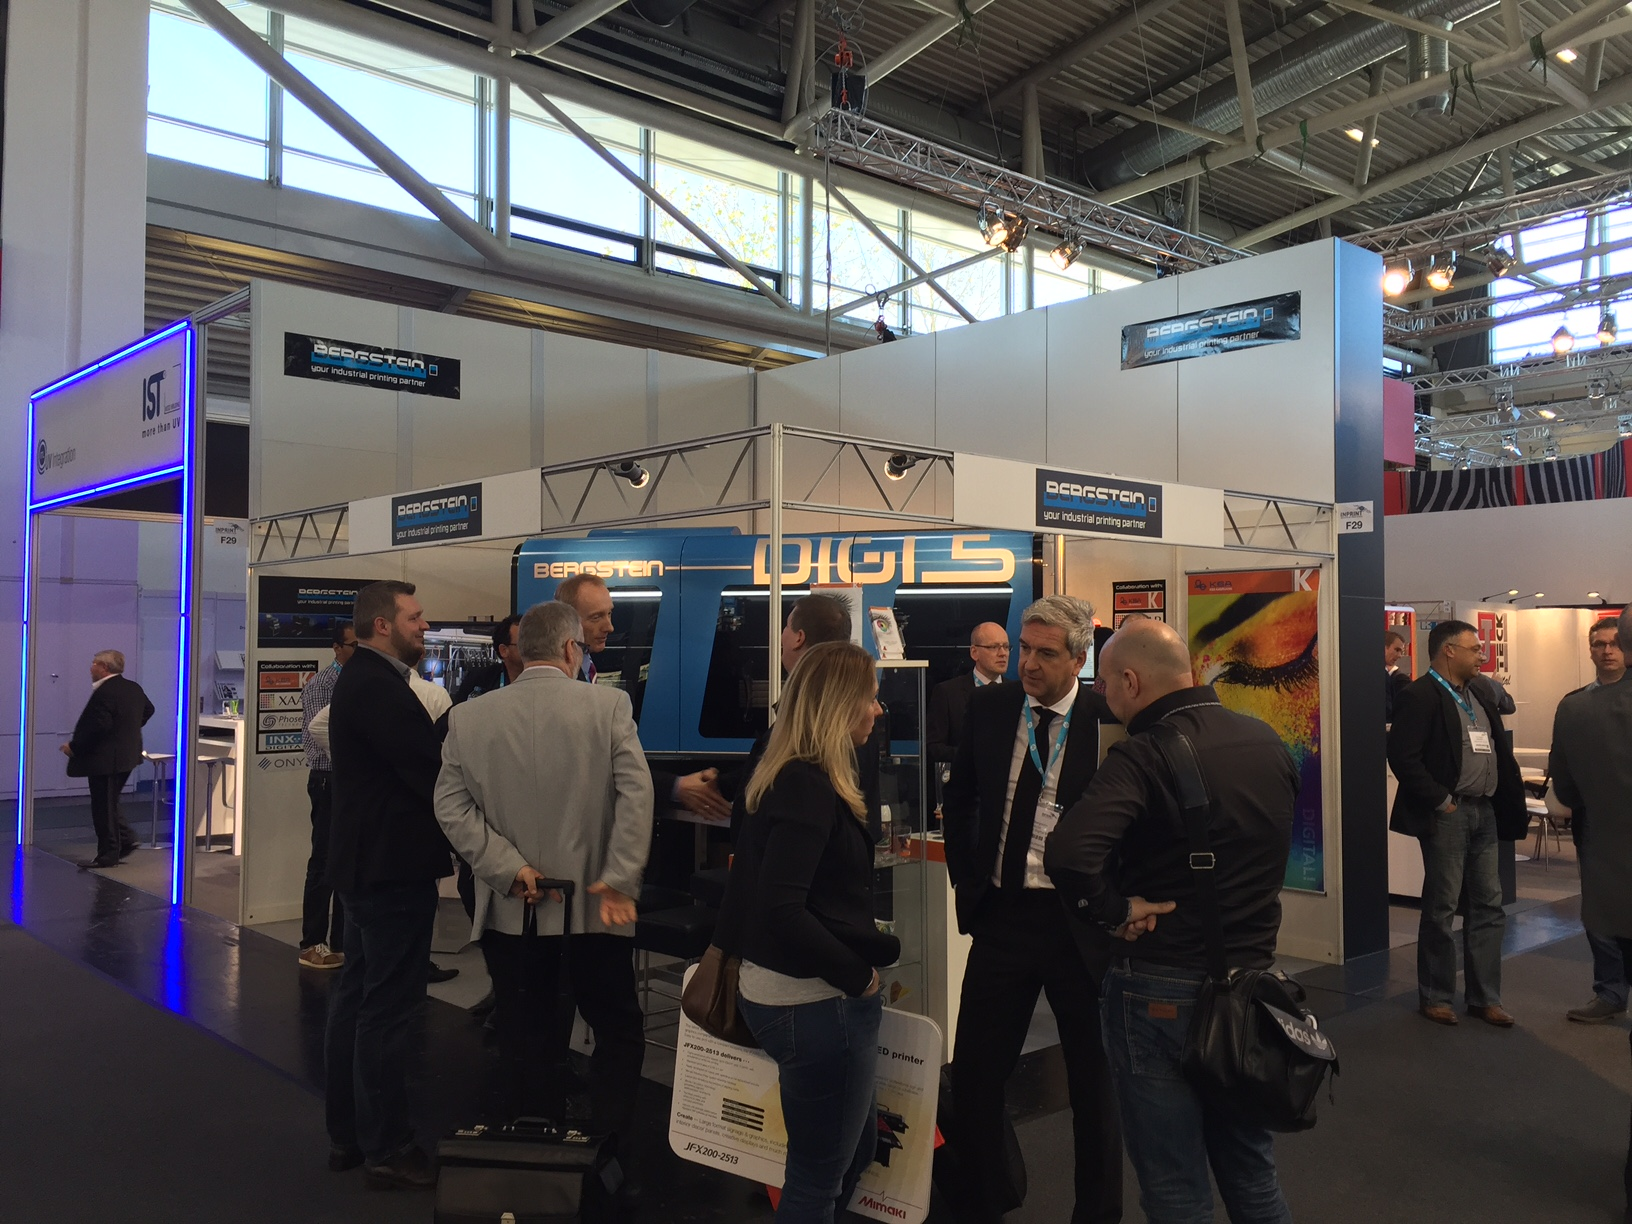 Bergstein Exhibiting at InPrint 2015